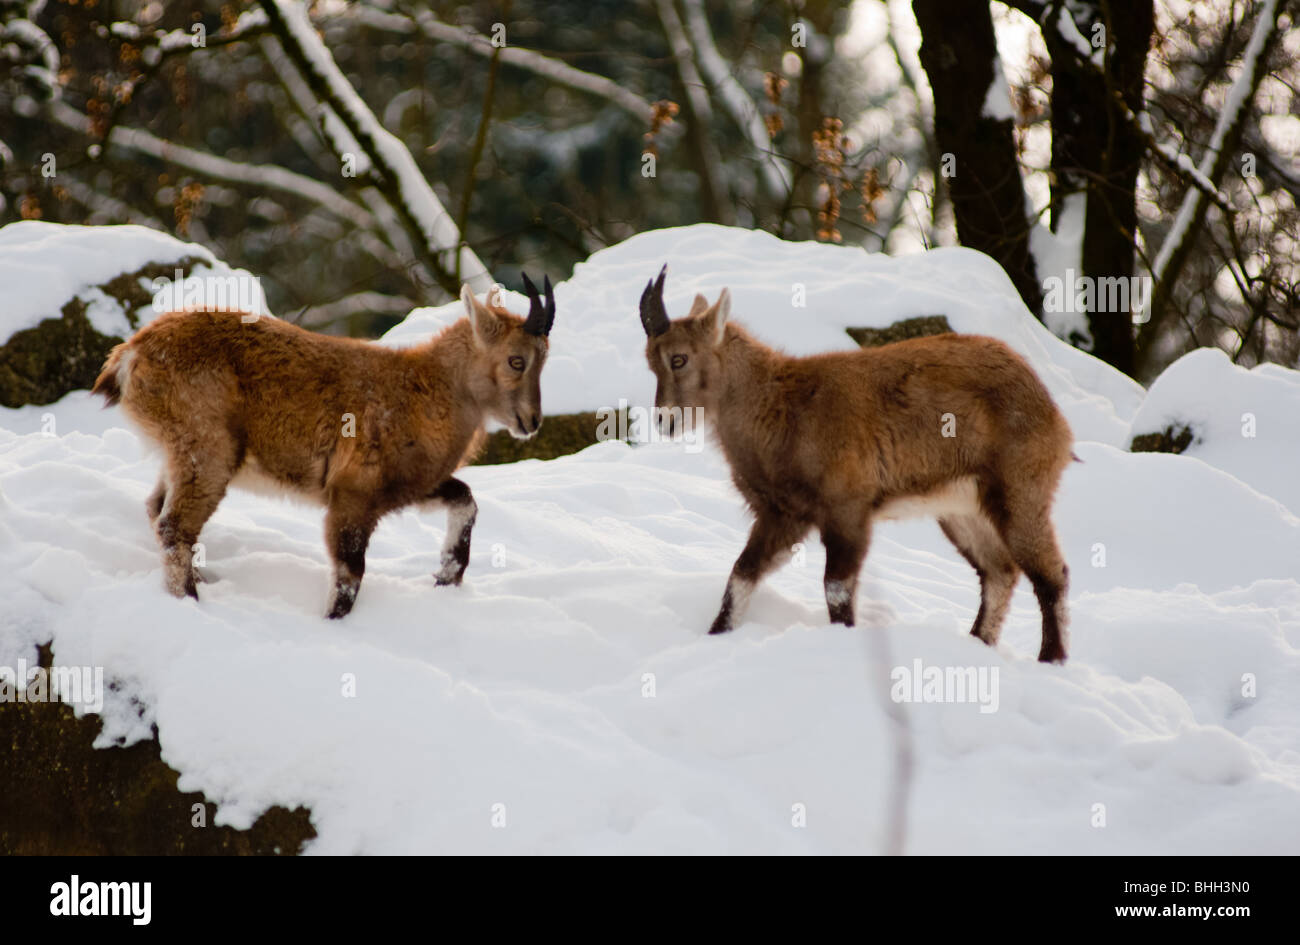 Two young Ibex interacting - Stock Image